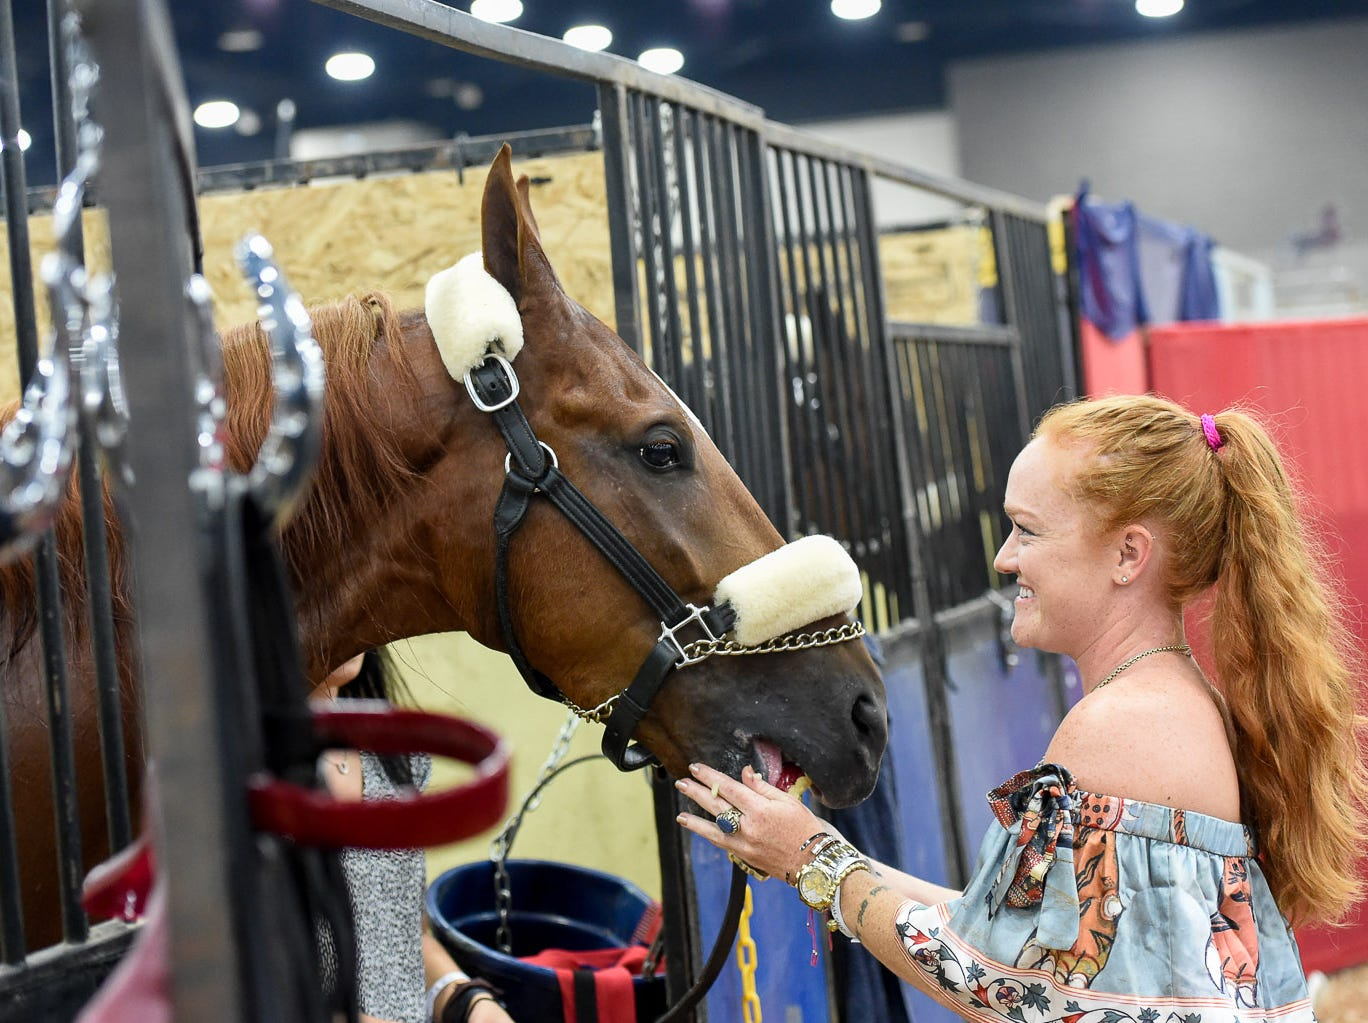 Ali DeGray feeds an apple to her mother, Helen Rich's horse I'm Ziggy Stardust, after winning the 5 GAITED KY COUNTY FAIR CHAMPIONSHIP Saturday night.